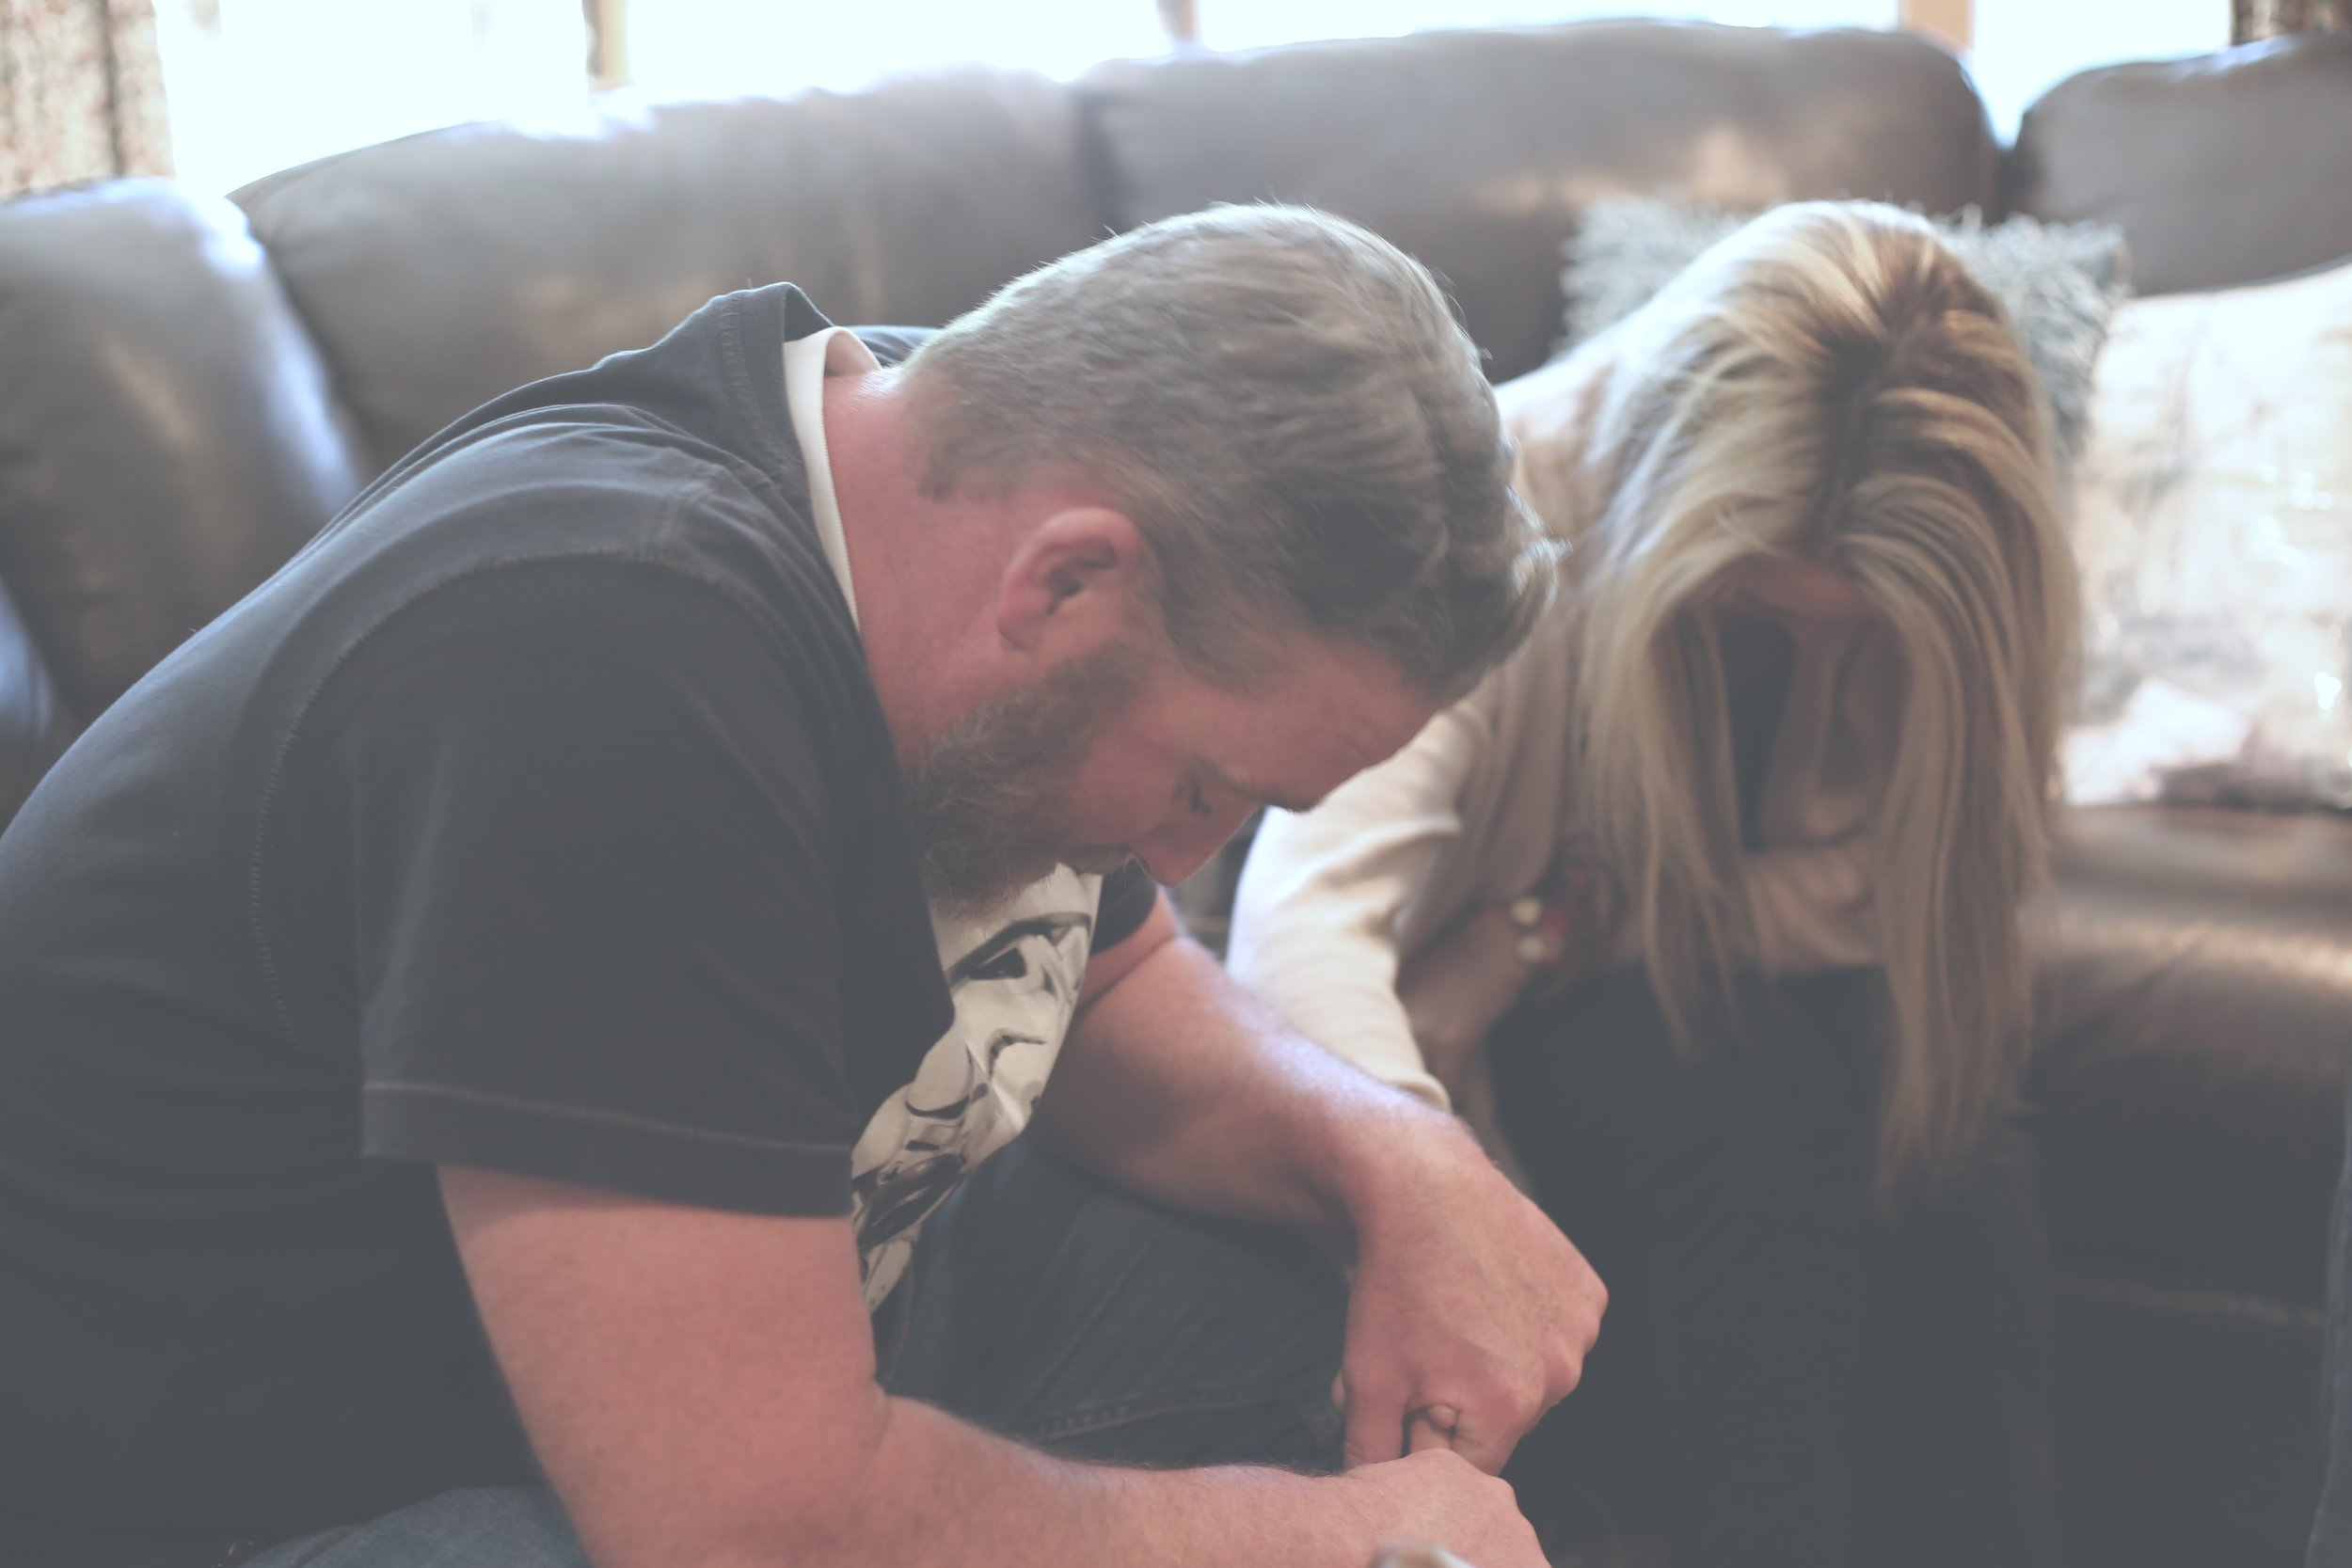 prayer - how can we be praying for you?